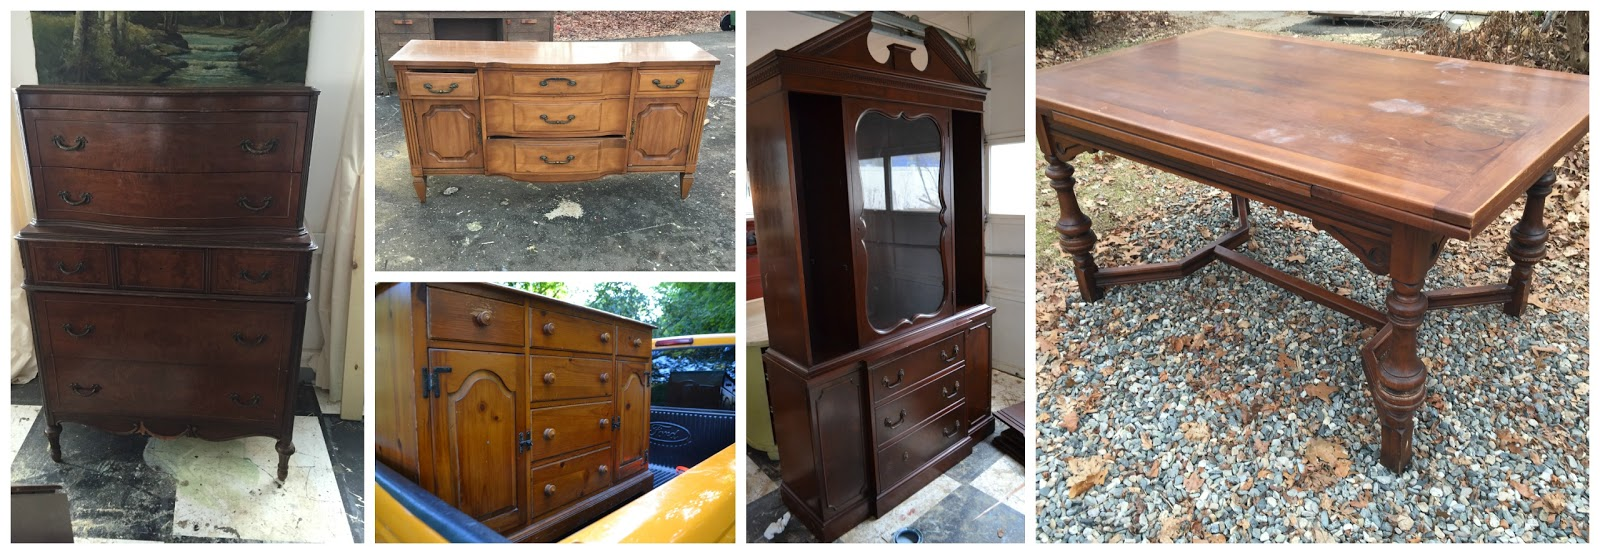 Heir and Space: How to Buy Furniture on Craigslist